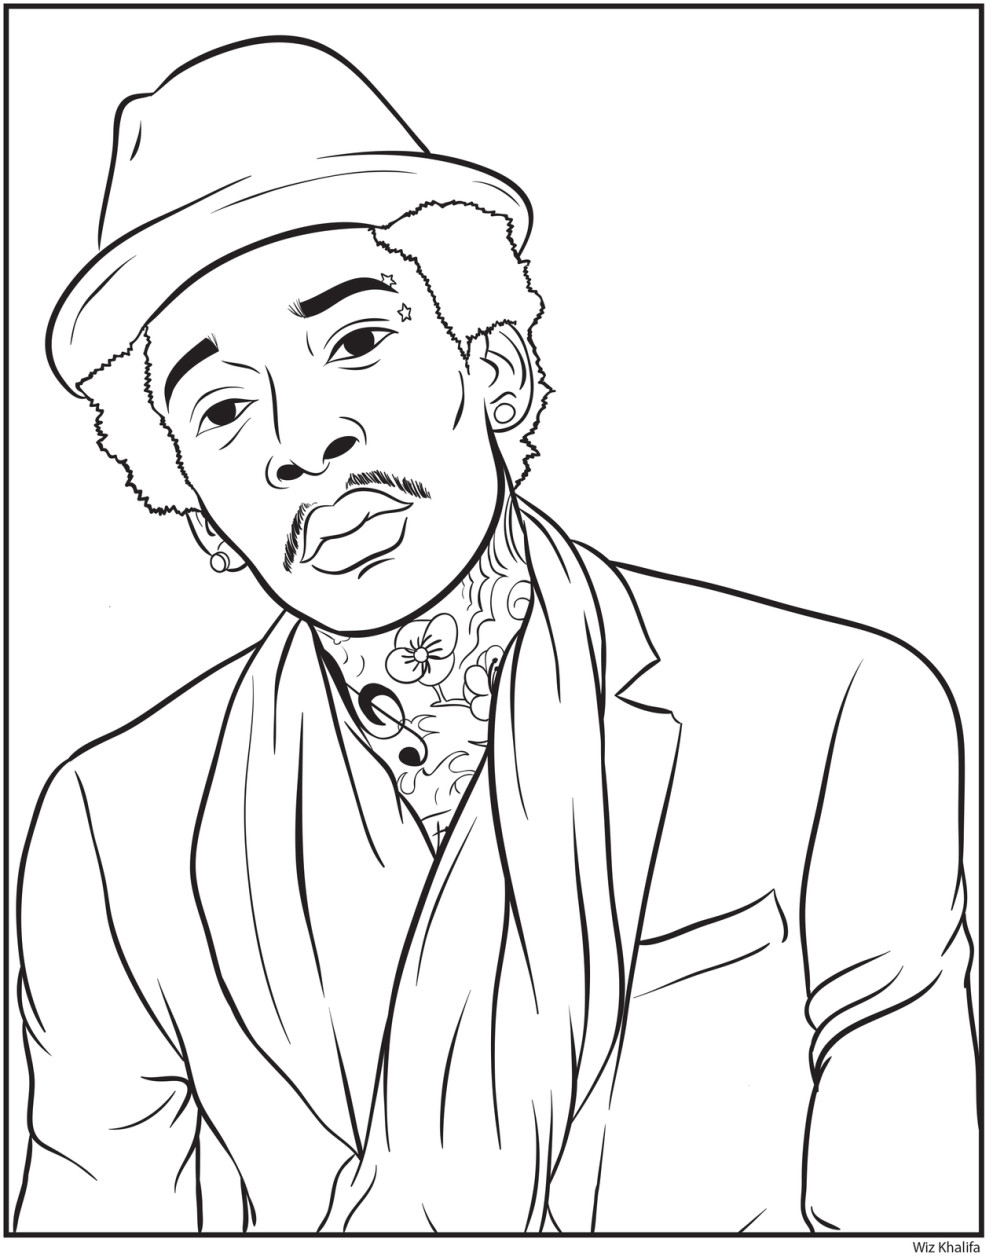 Free Coloring Pages Of Rappers Draw Drawing Coloring Pages